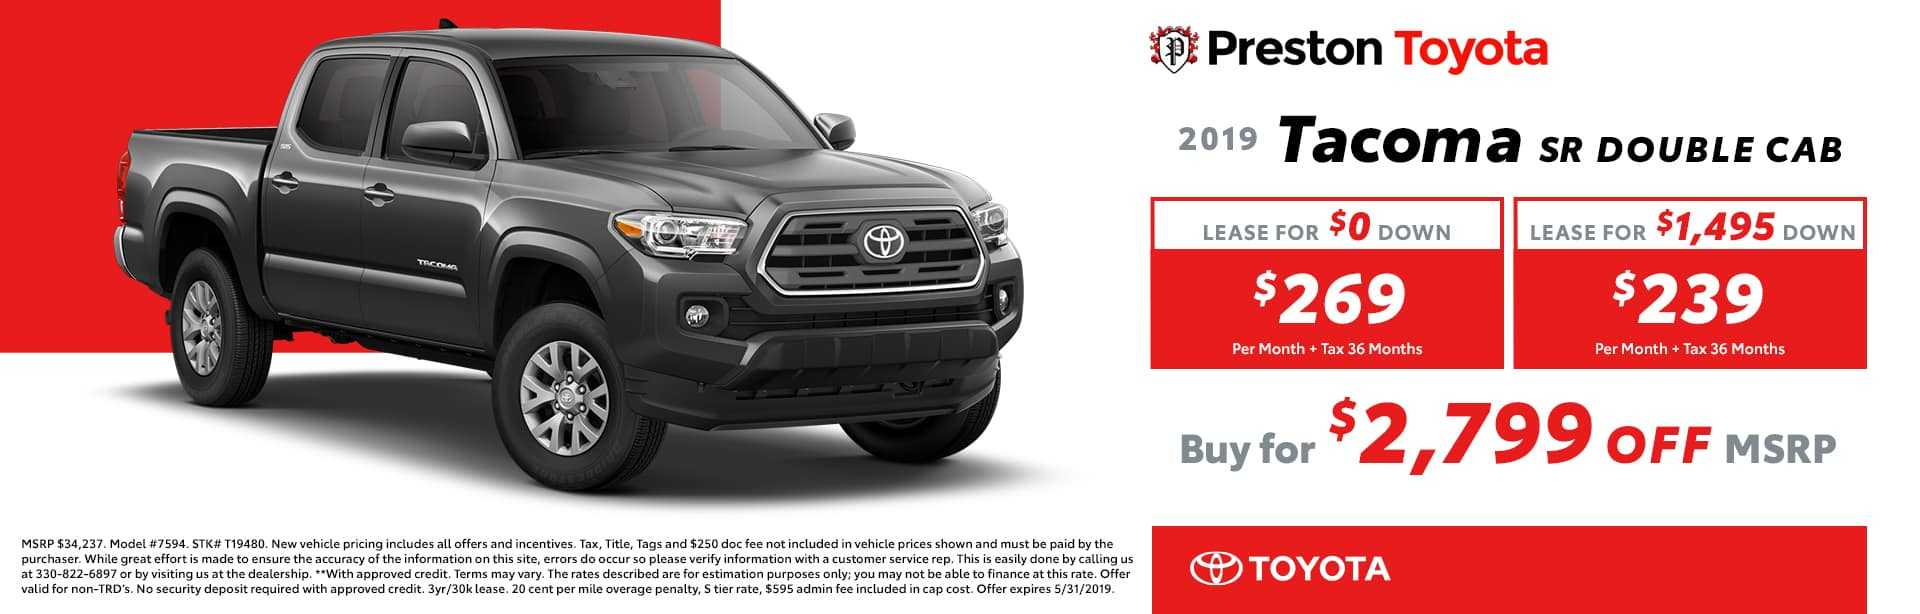 May special on the 2019 Toyota Tacoma